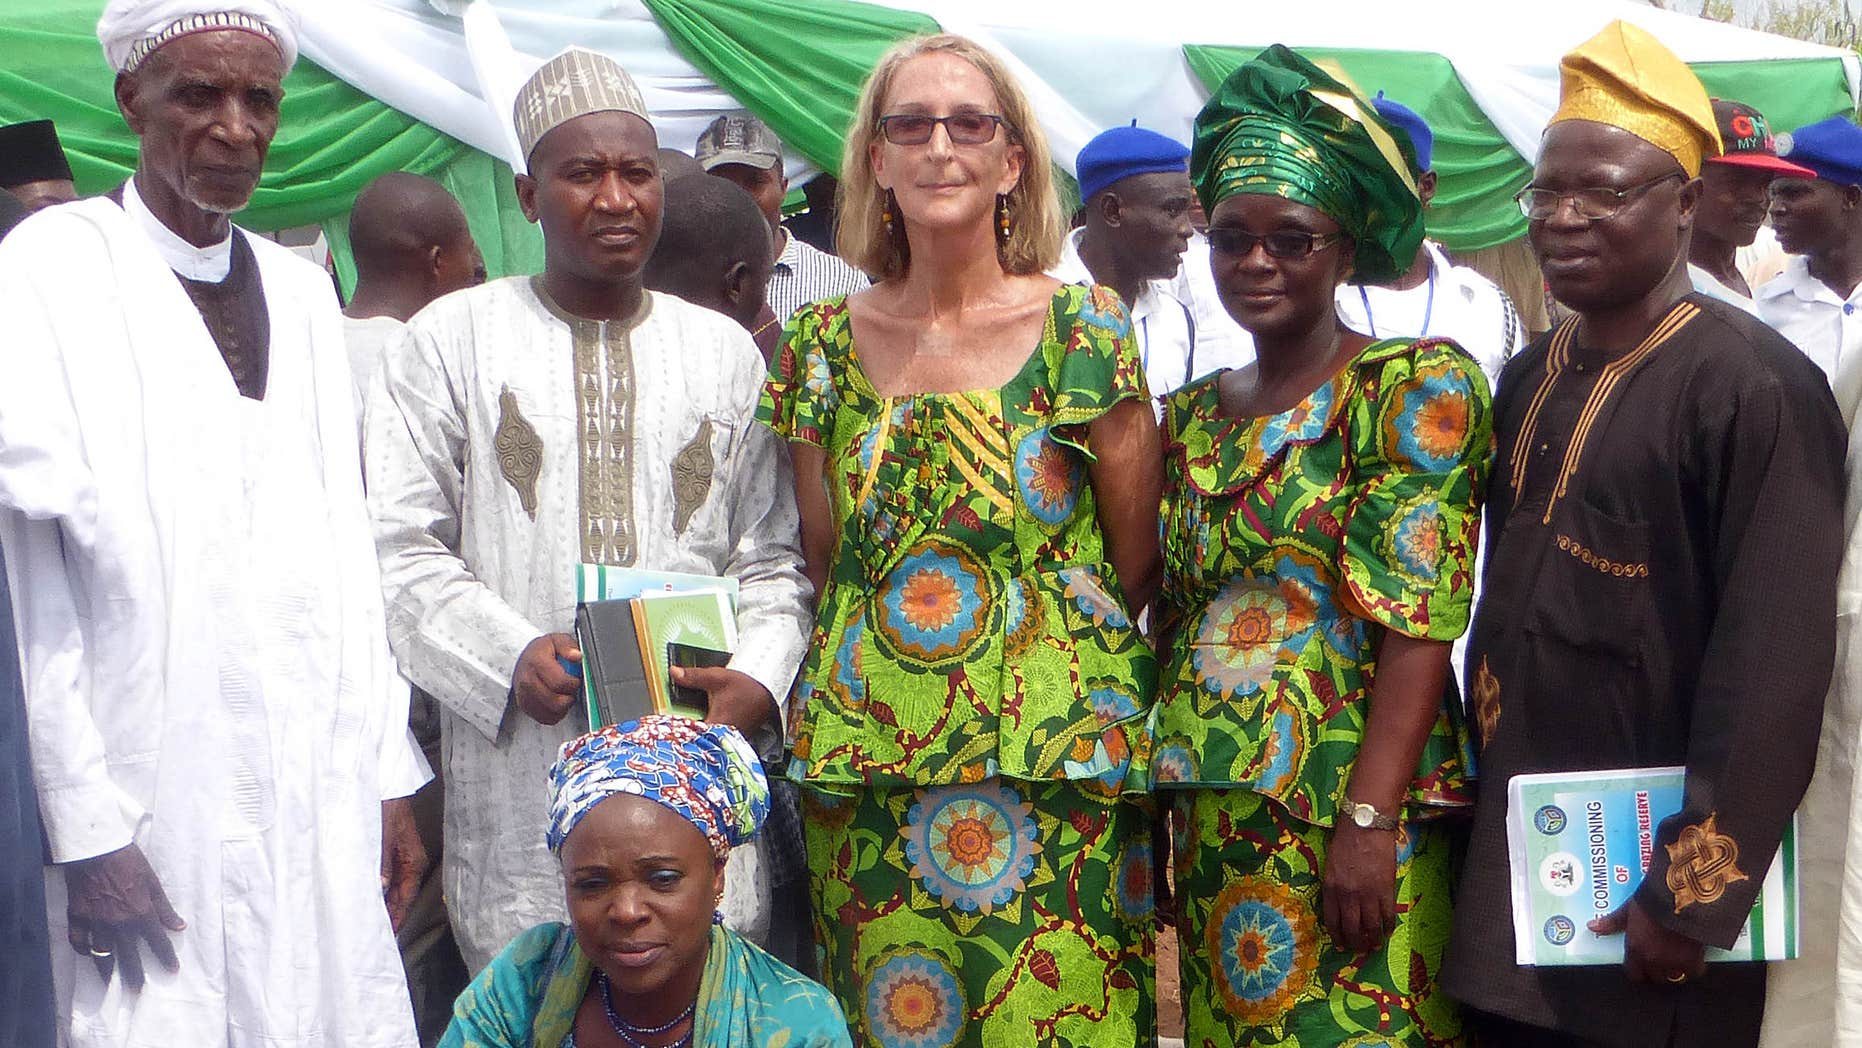 March 6, 2015: Seattle missionary Rev. Phyllis Sortor, center, stands with a delegation of area dignitaries in a town in Nigeria.